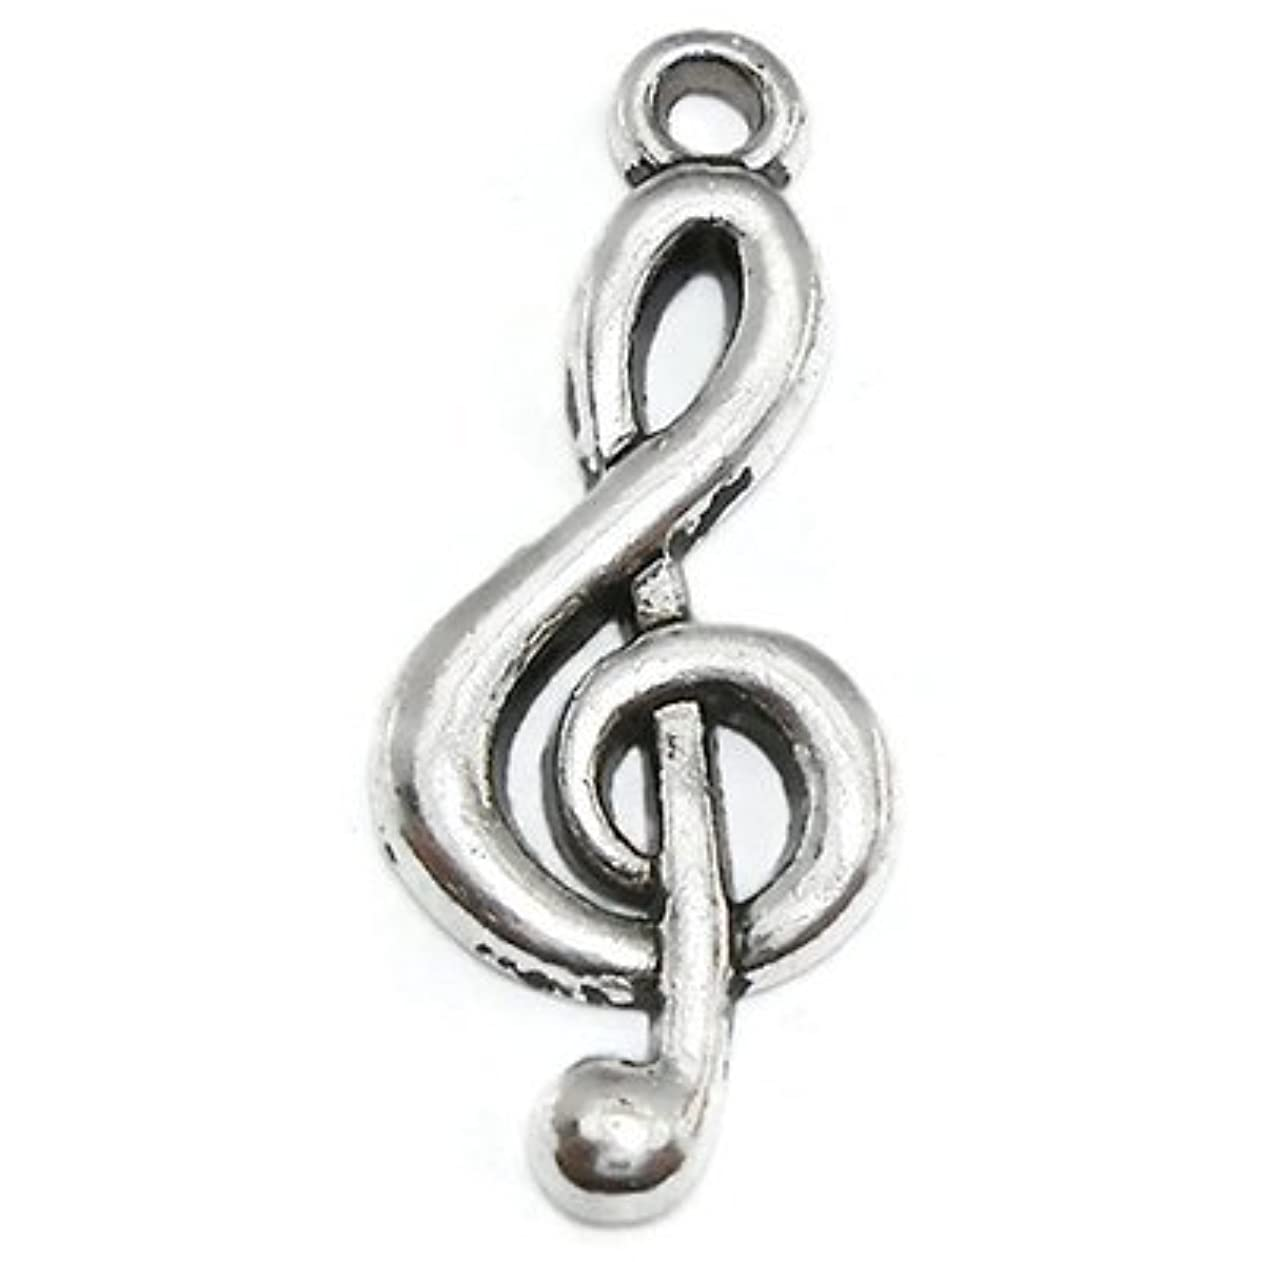 Y&Y Star 25x10mm G Clef Symbol Music Note Charms Pendant 50pcs for Crafting,Jewelry Making Accessory (Music Note 50 silver) mrpnlktqrrx96024